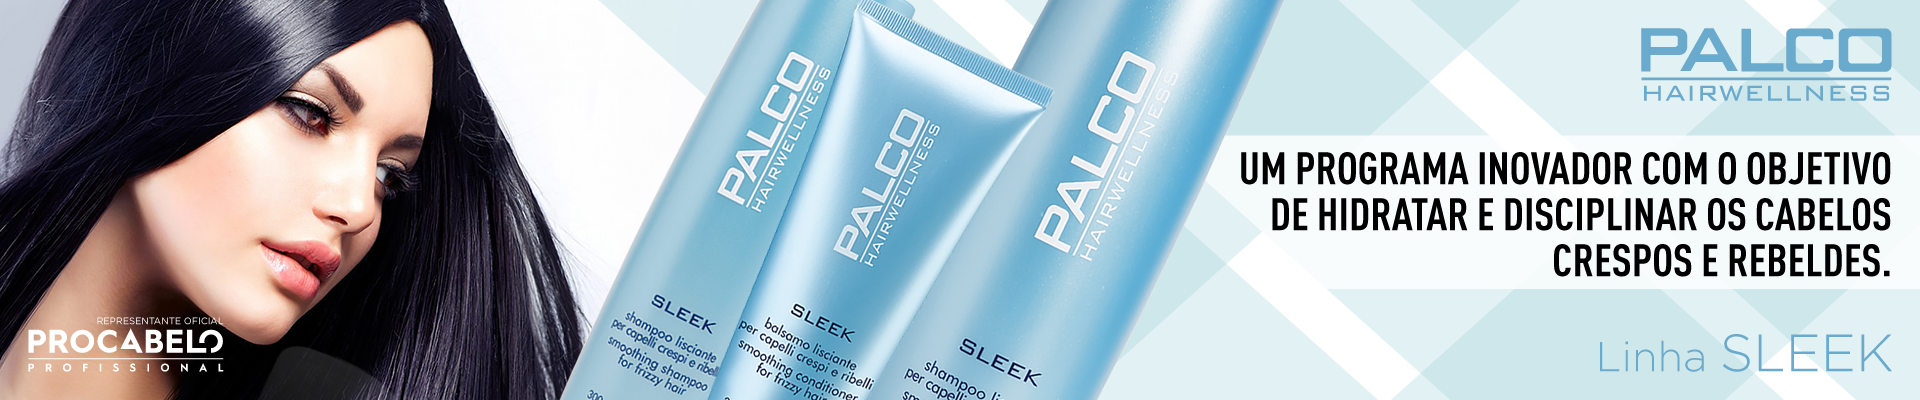 Hairwellness SLEEK Palco